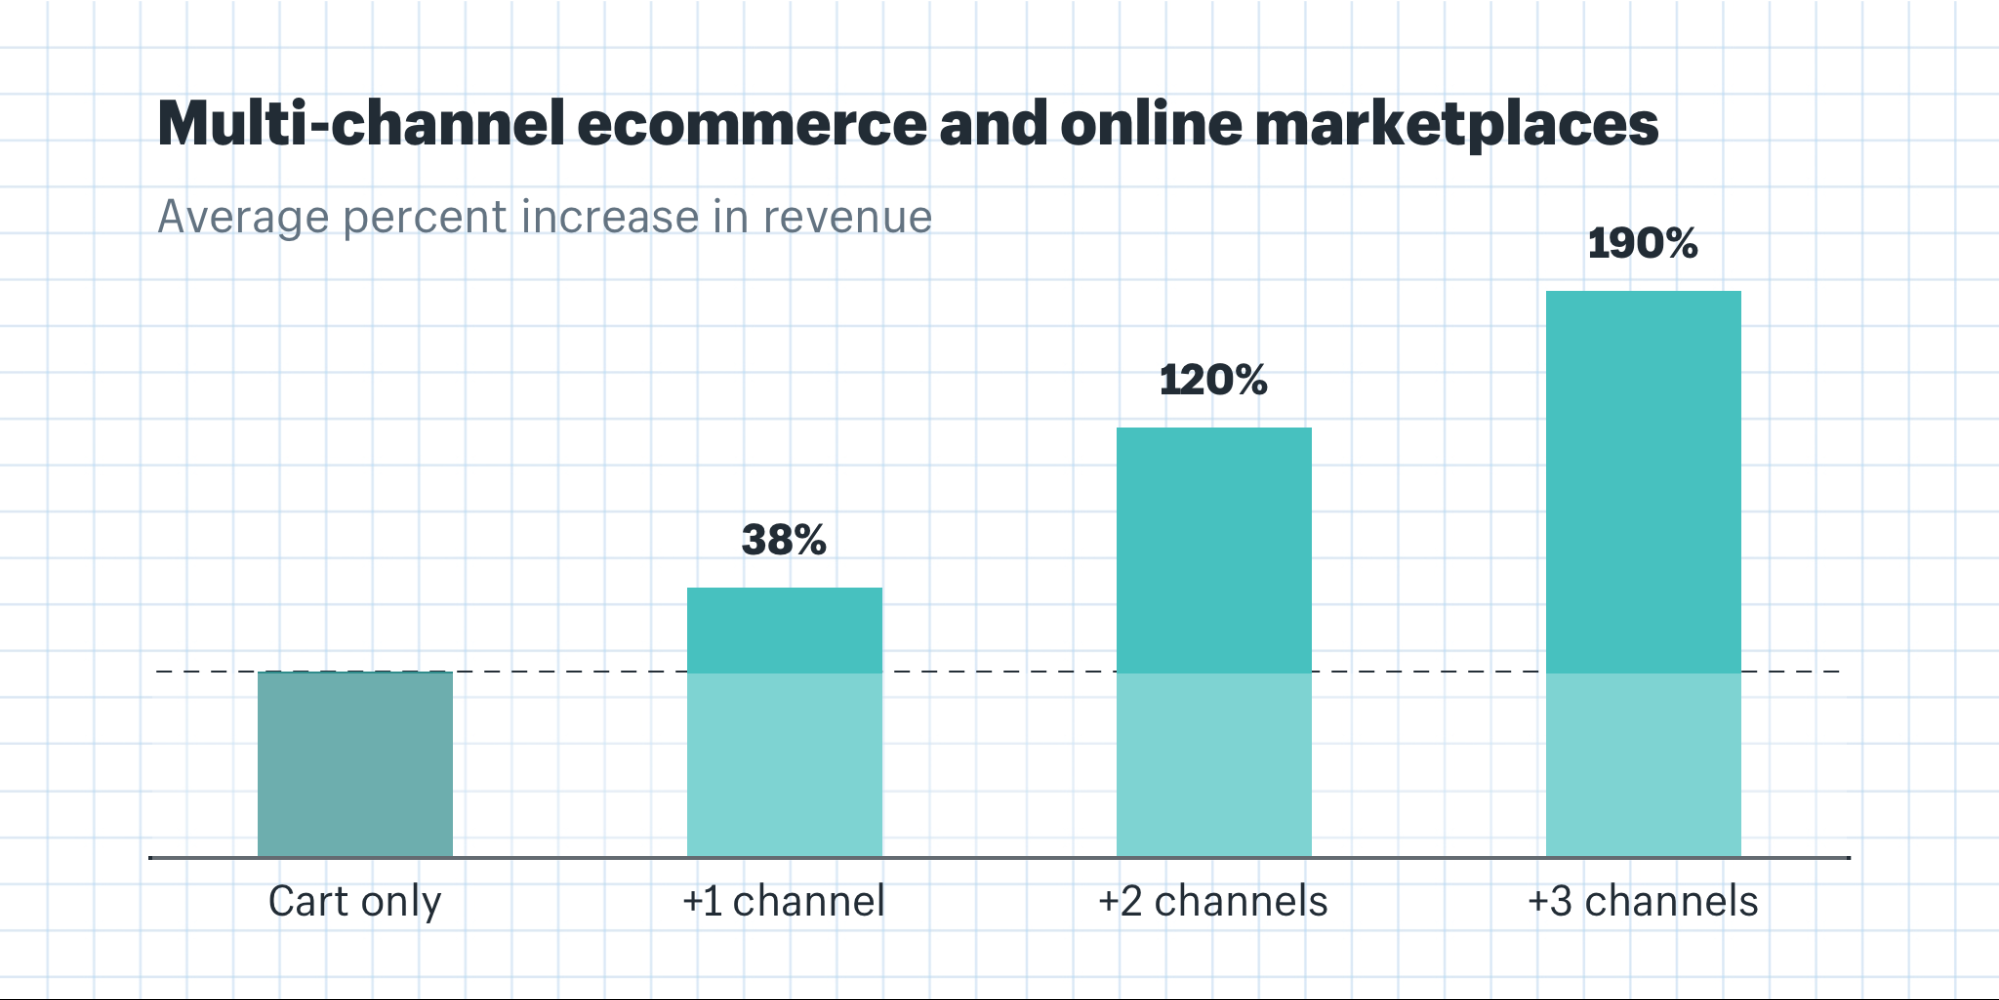 Multi-channel ecommerce and online marketplaces